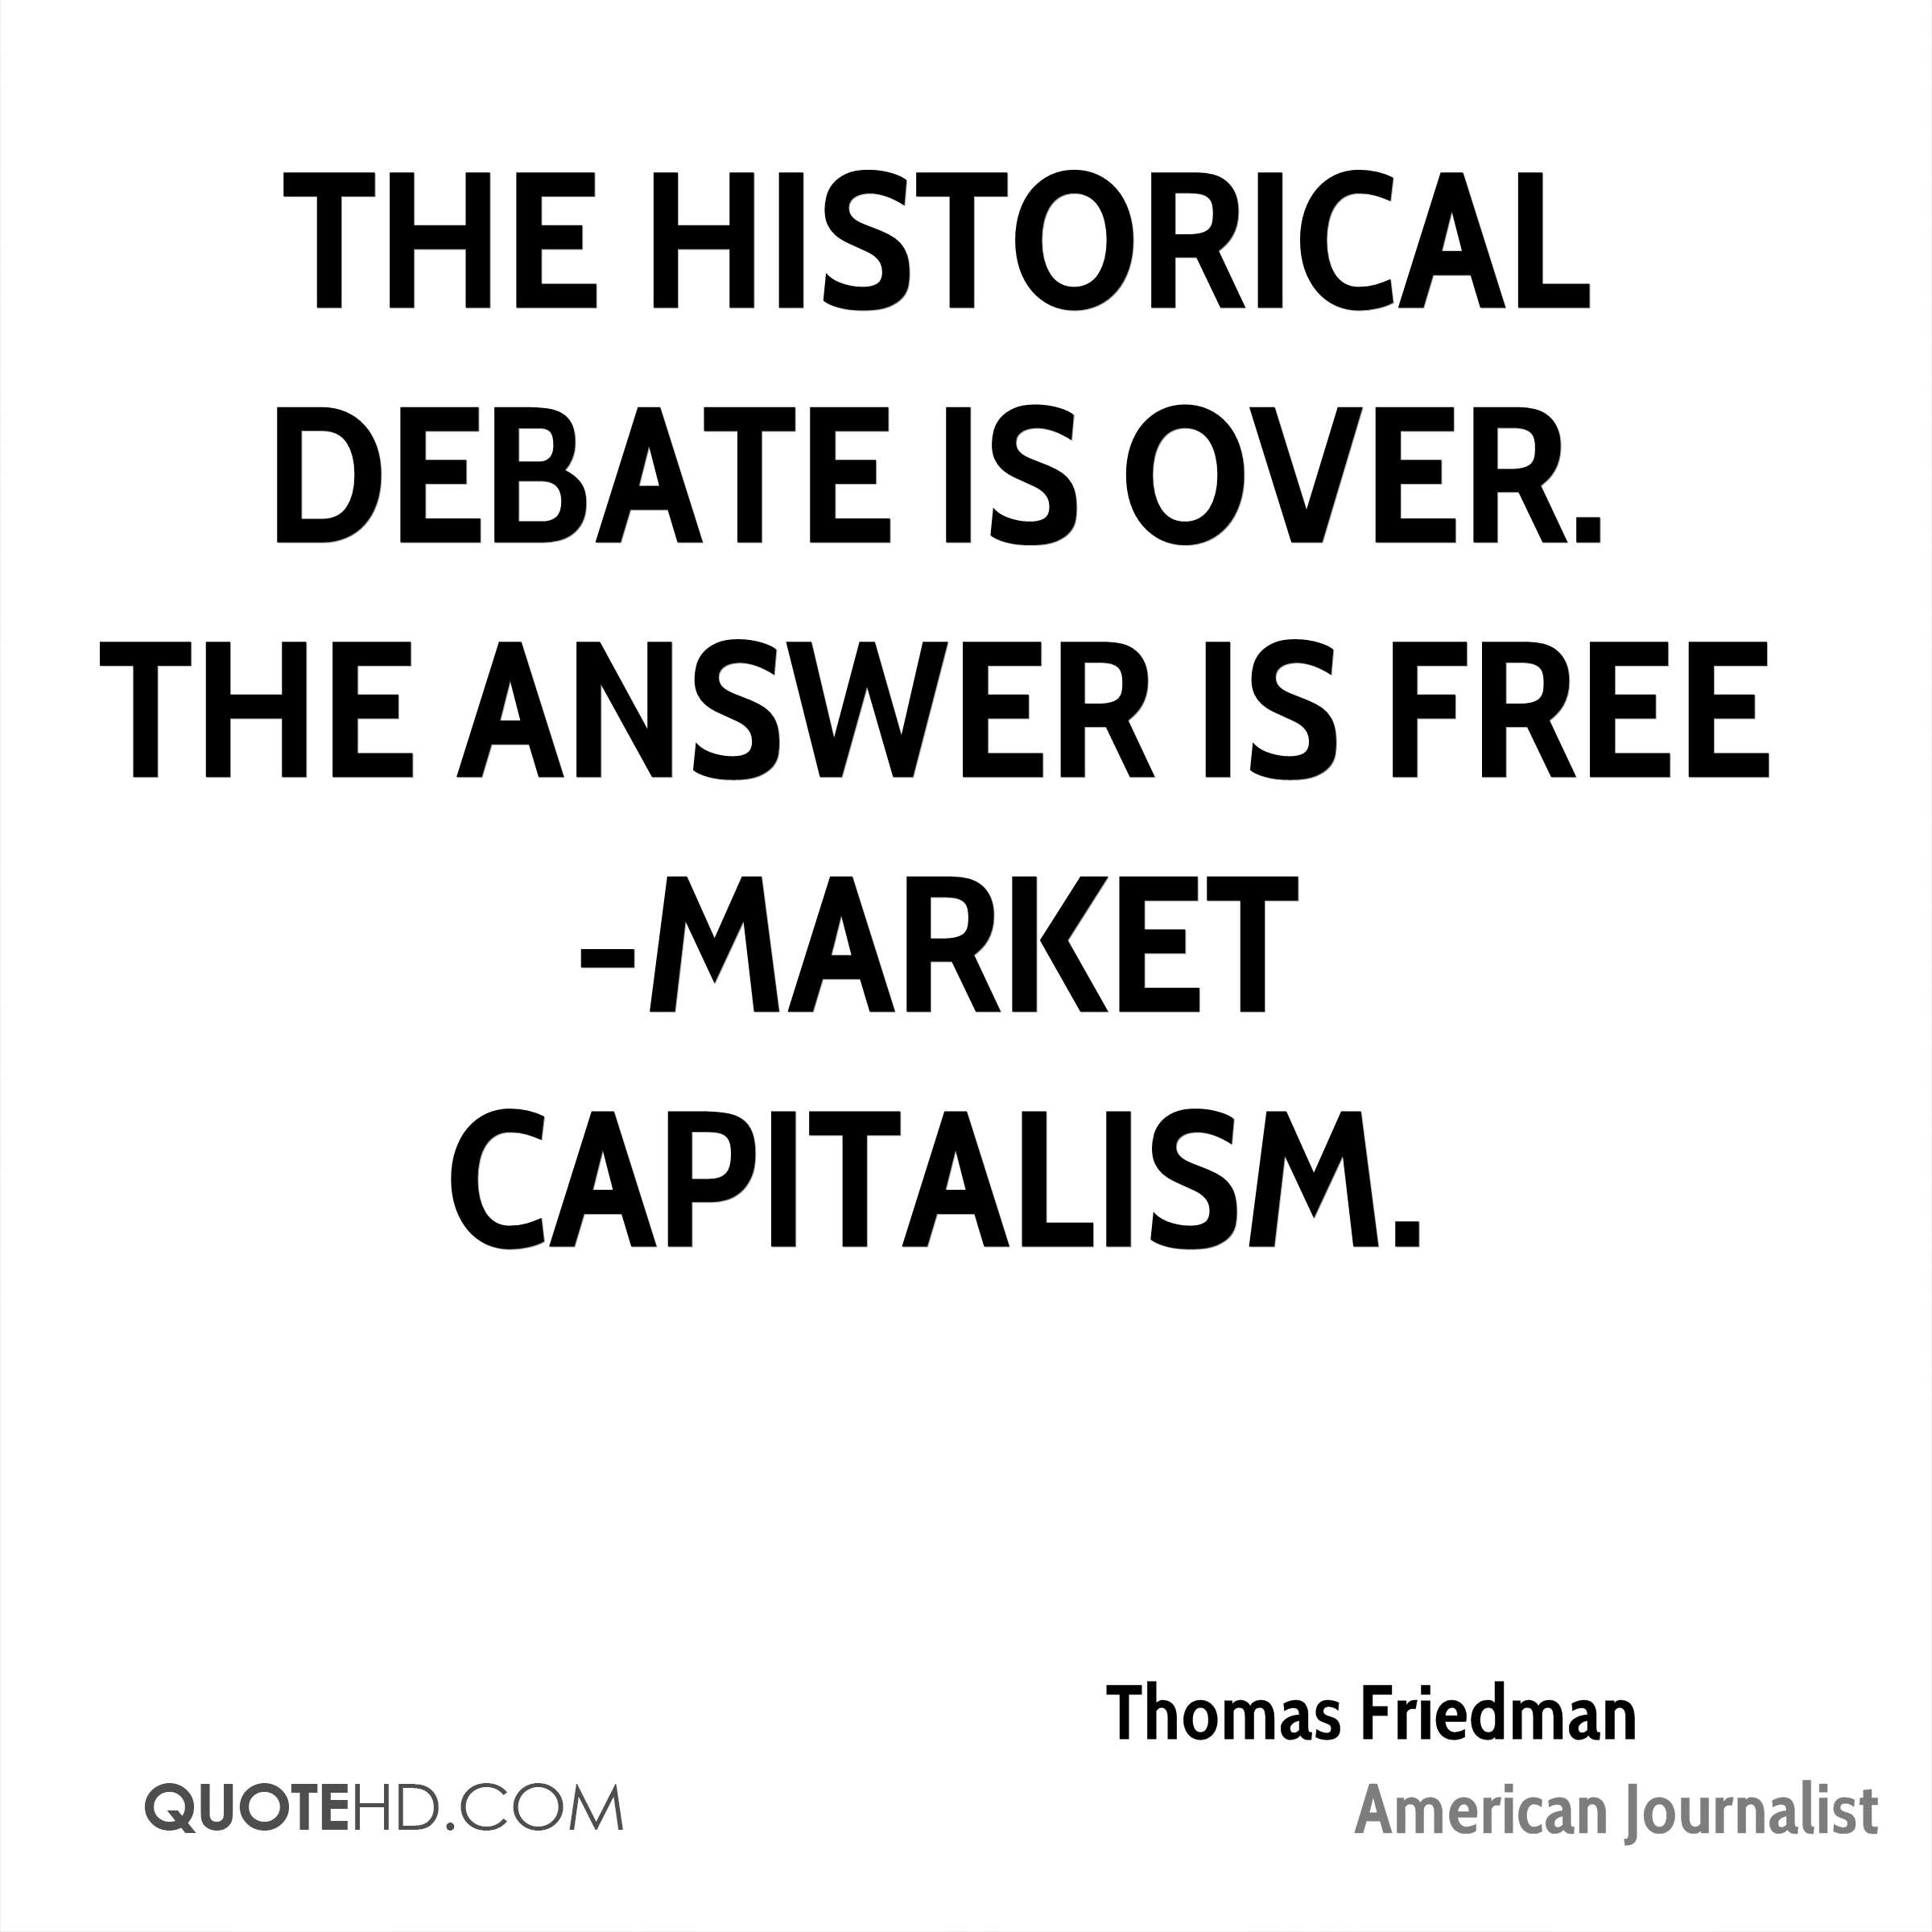 The historical debate is over. The answer is free-market capitalism.